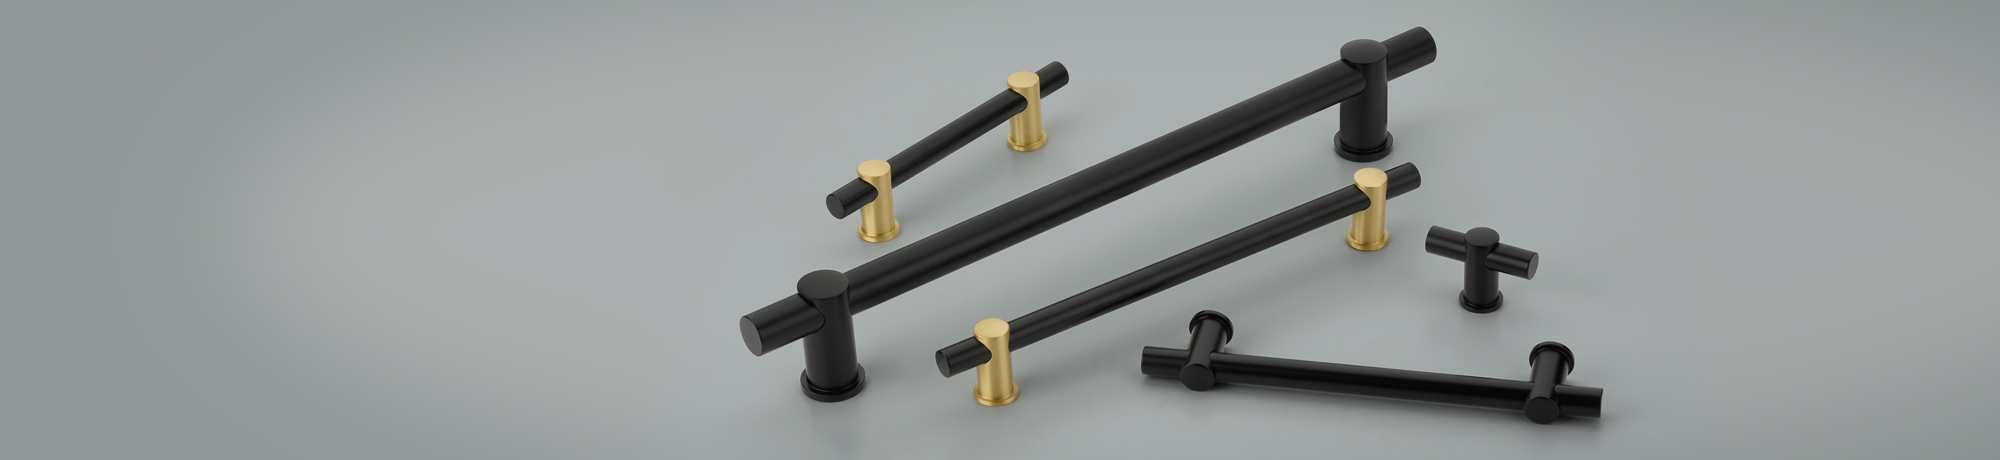 Kitchen Cabinet Hardware S And Pulls Schaub Company